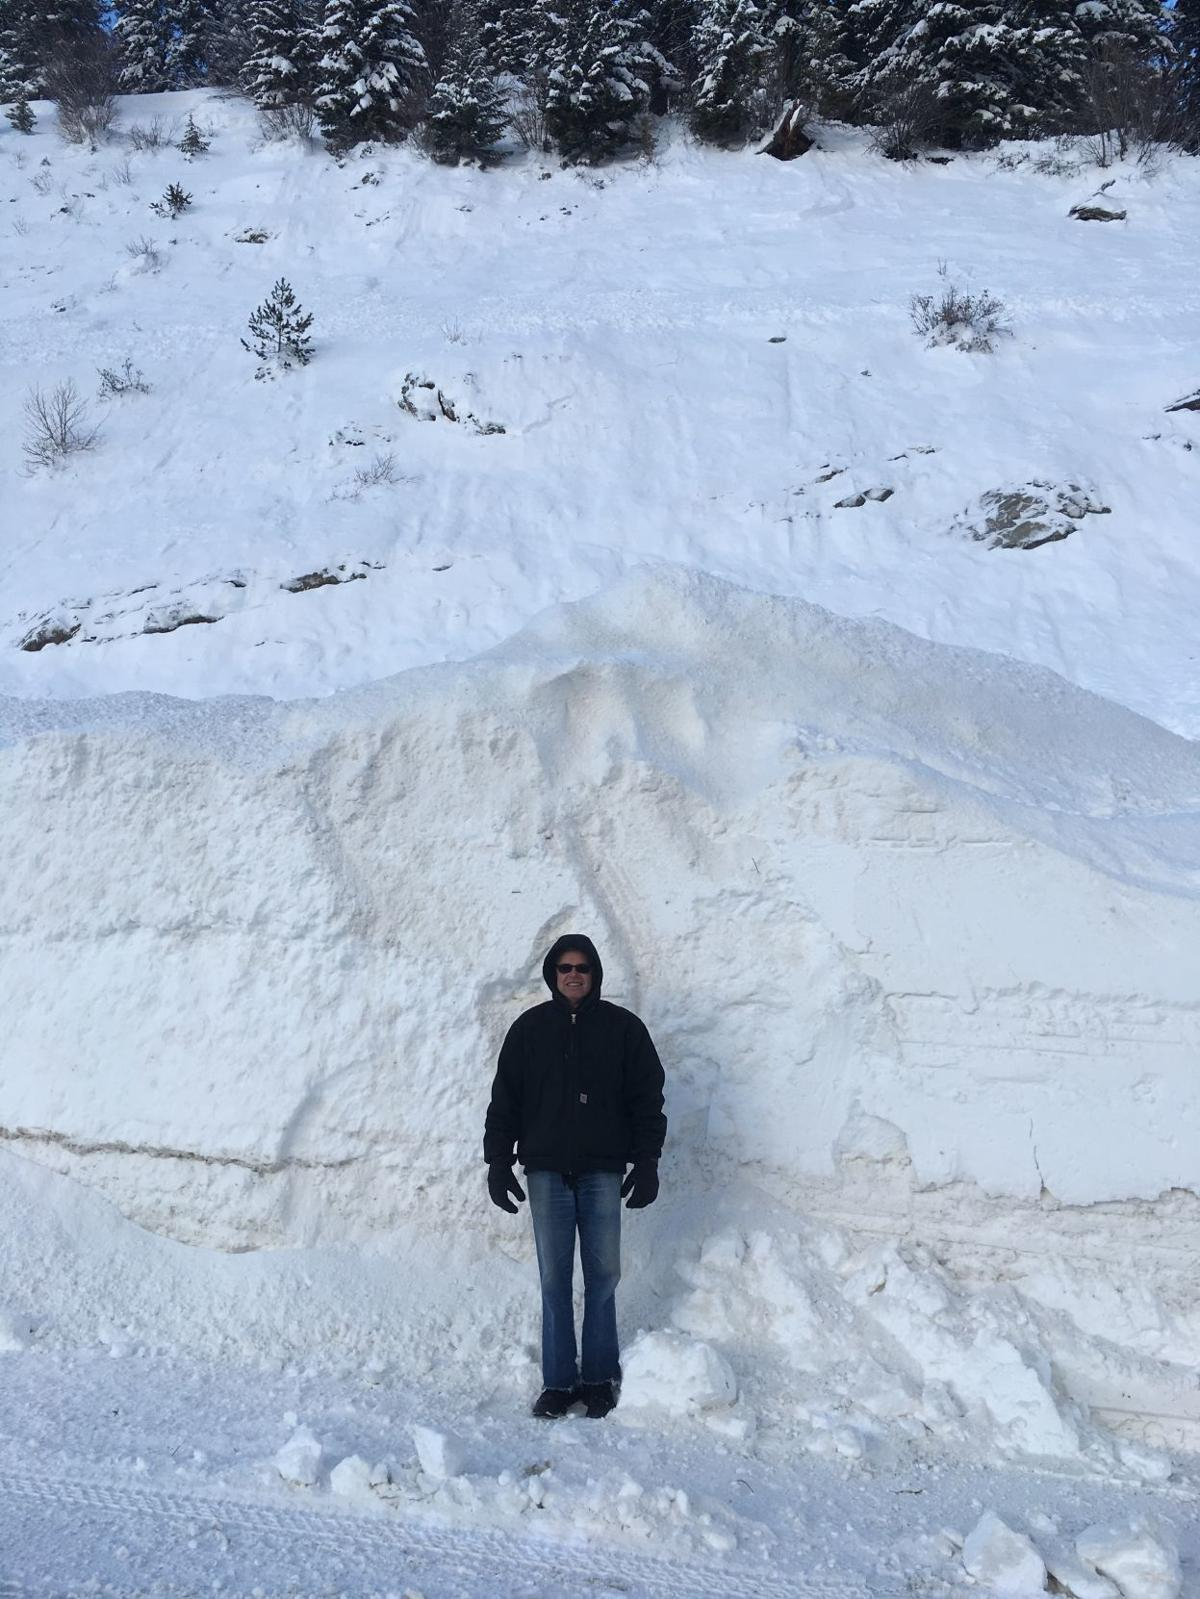 Butte priest caught in I-90 avalanche: 'It was as if the